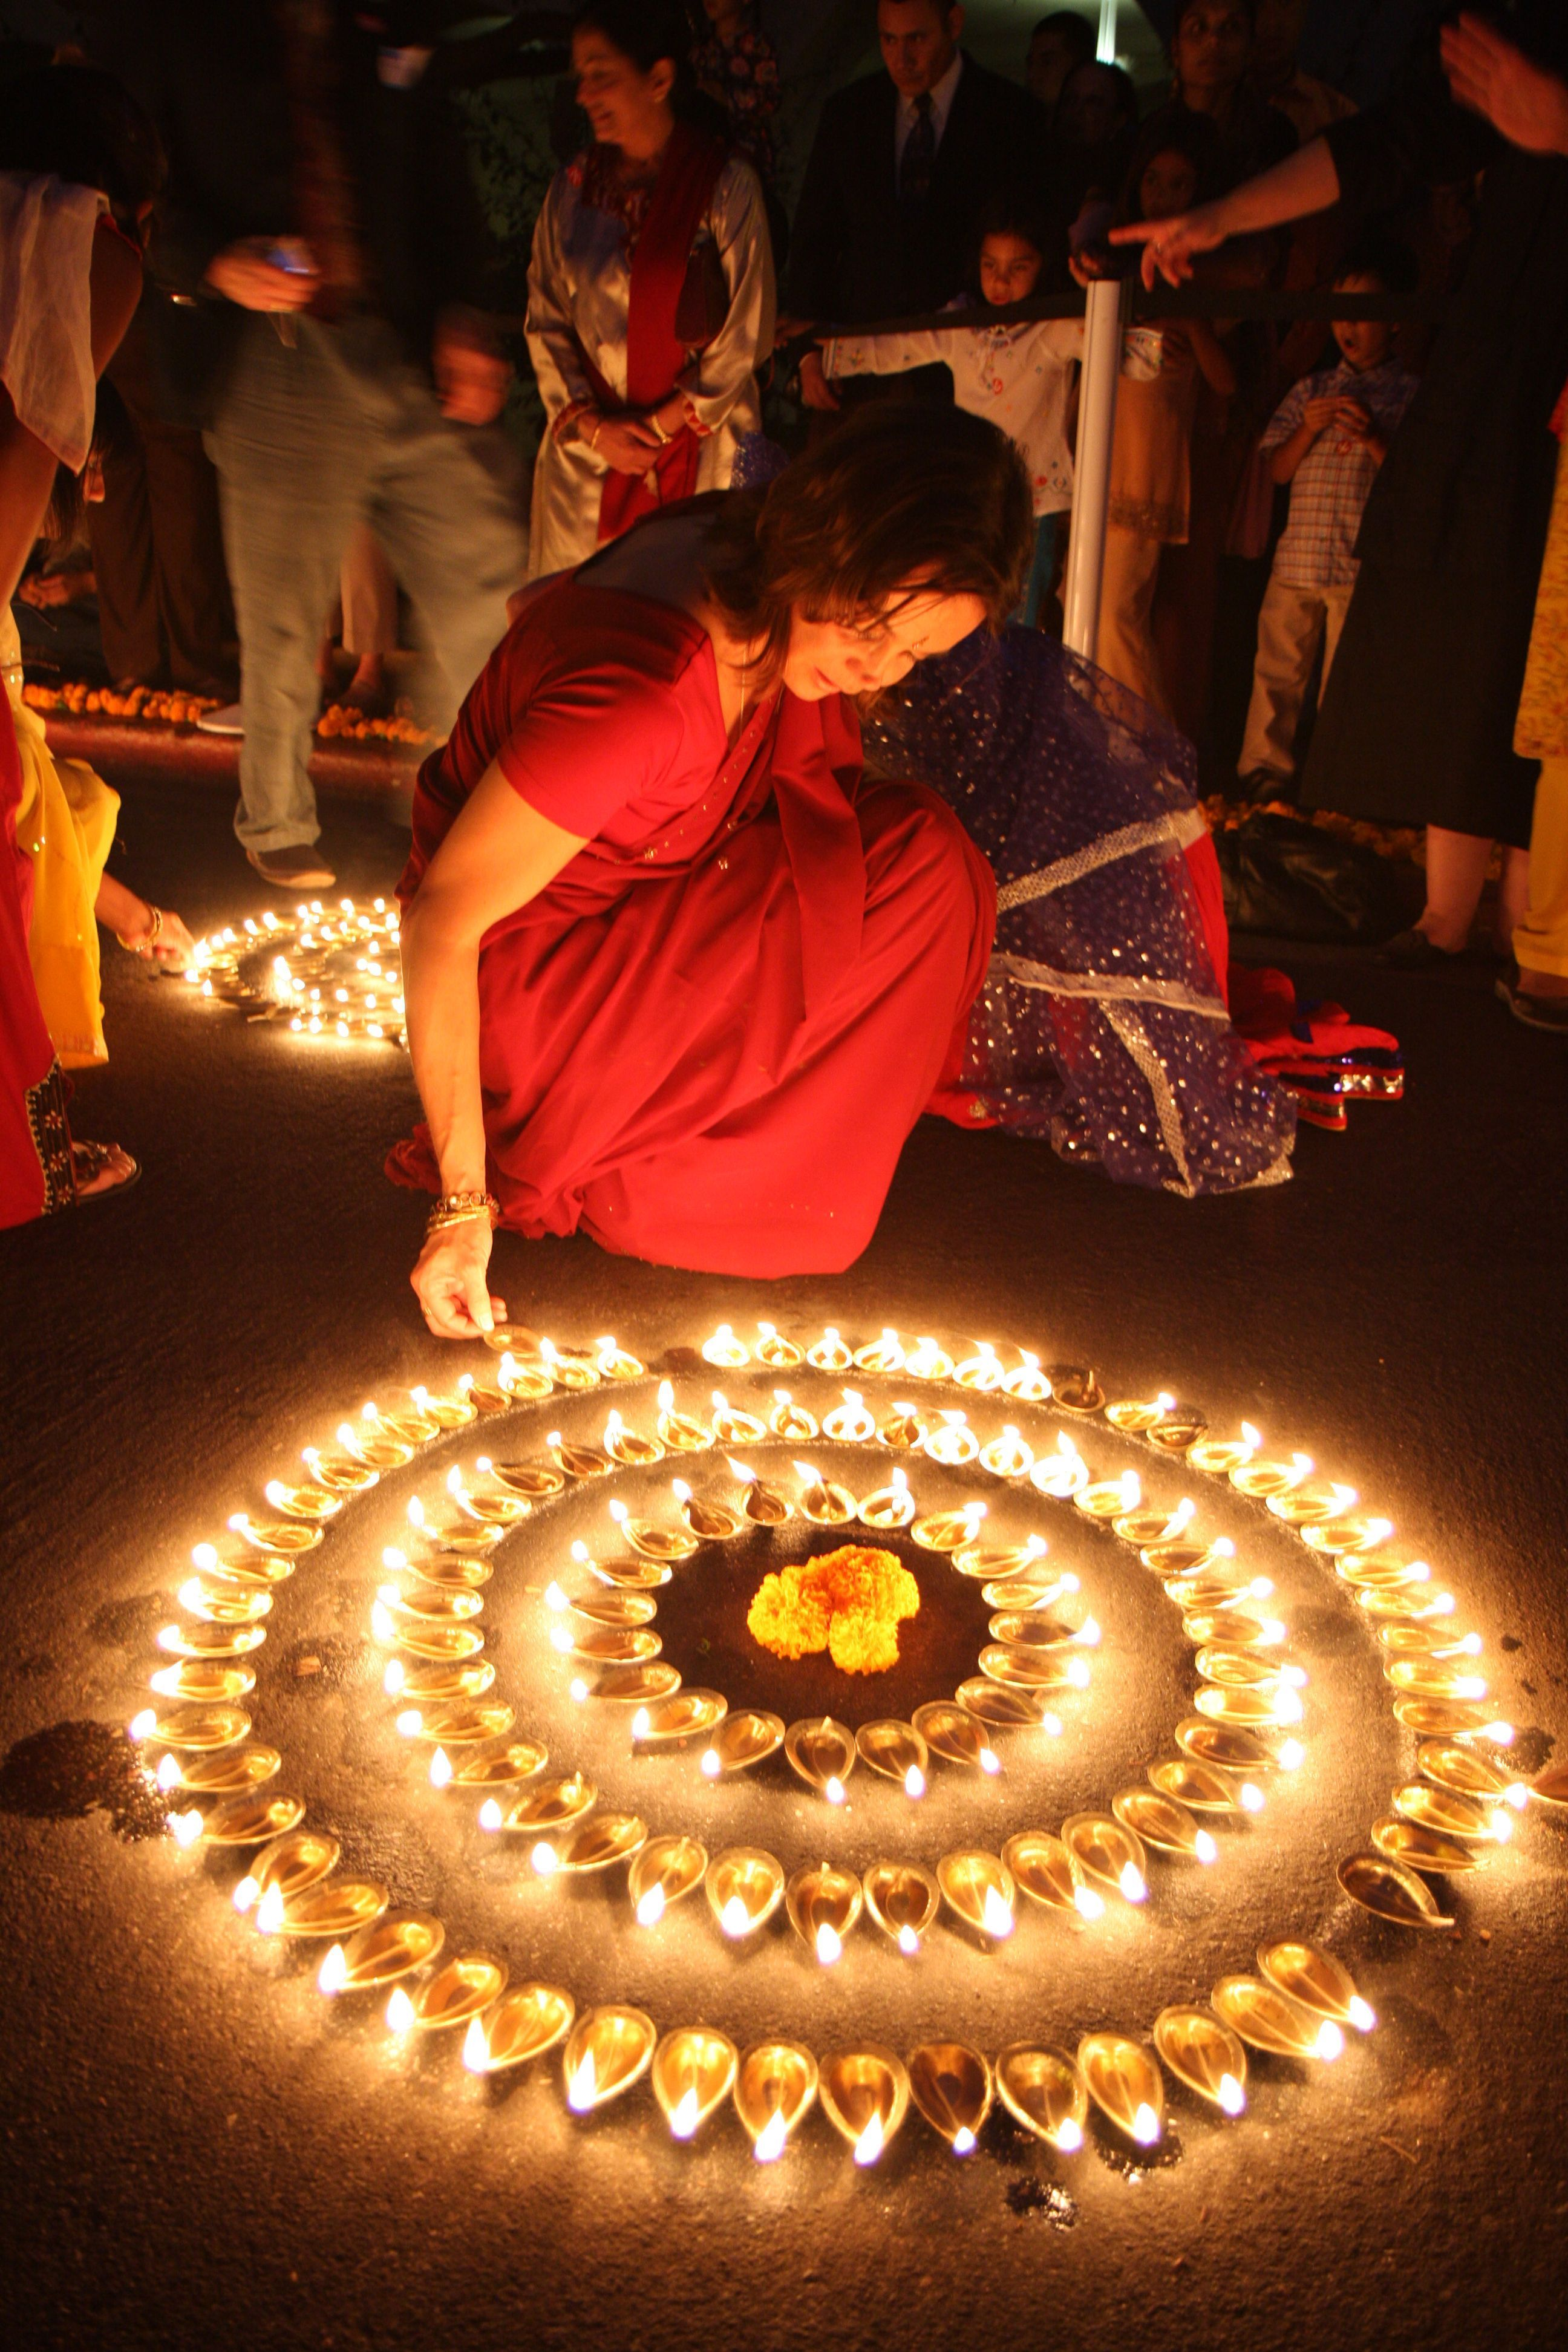 Diwali Decorations Ideas For Office And Home Easyday Diwali Festival Of Lights Festival Lights Diwali Decorations